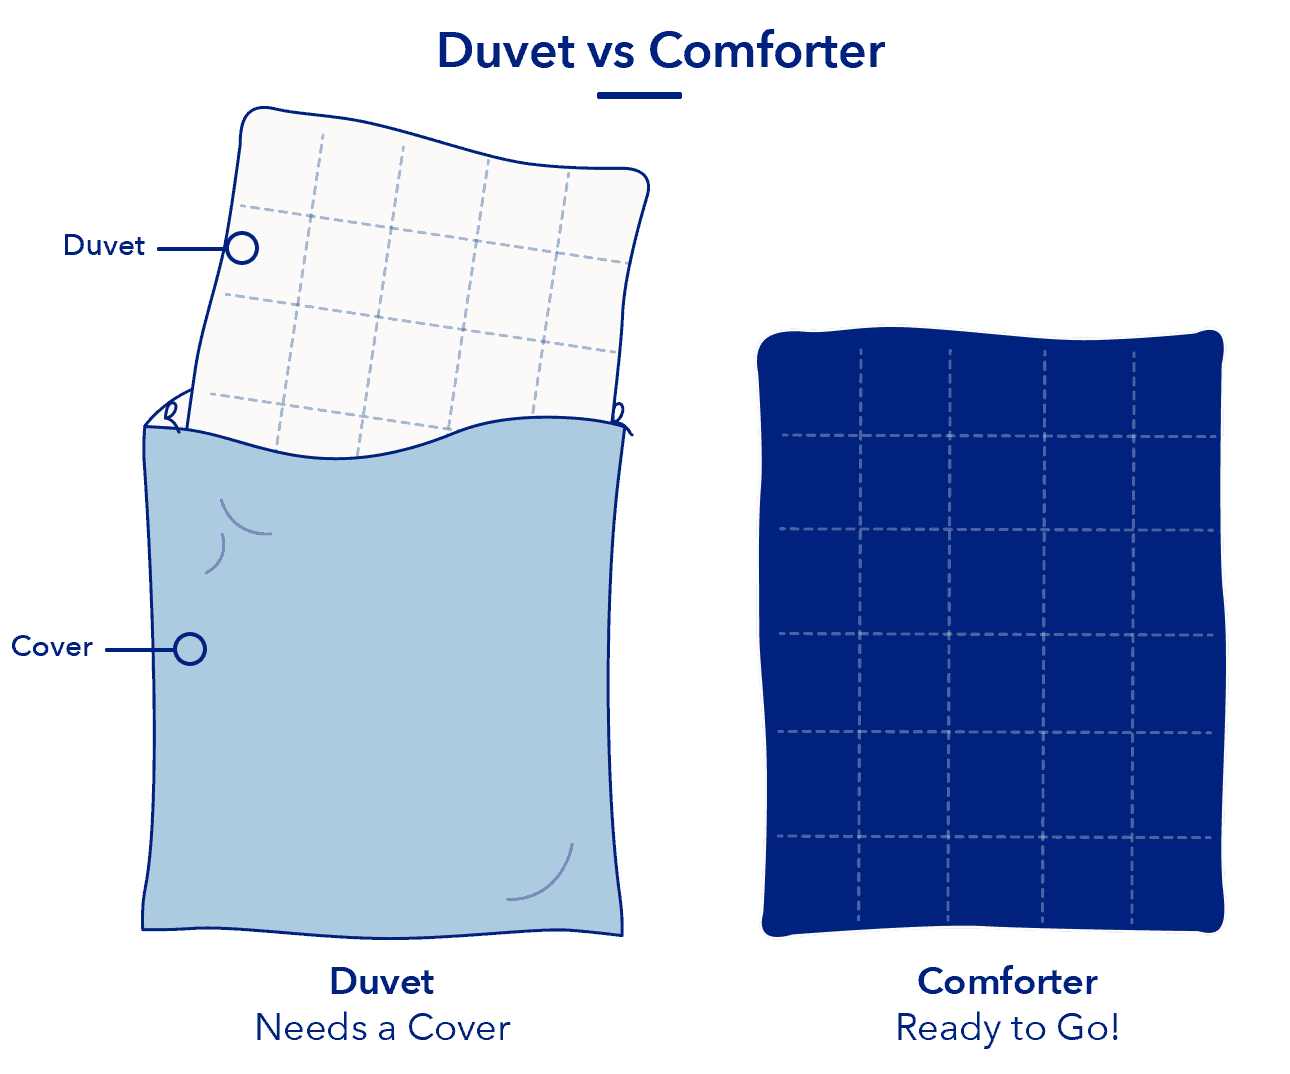 Duvet Vs Comforter Is There A Difference